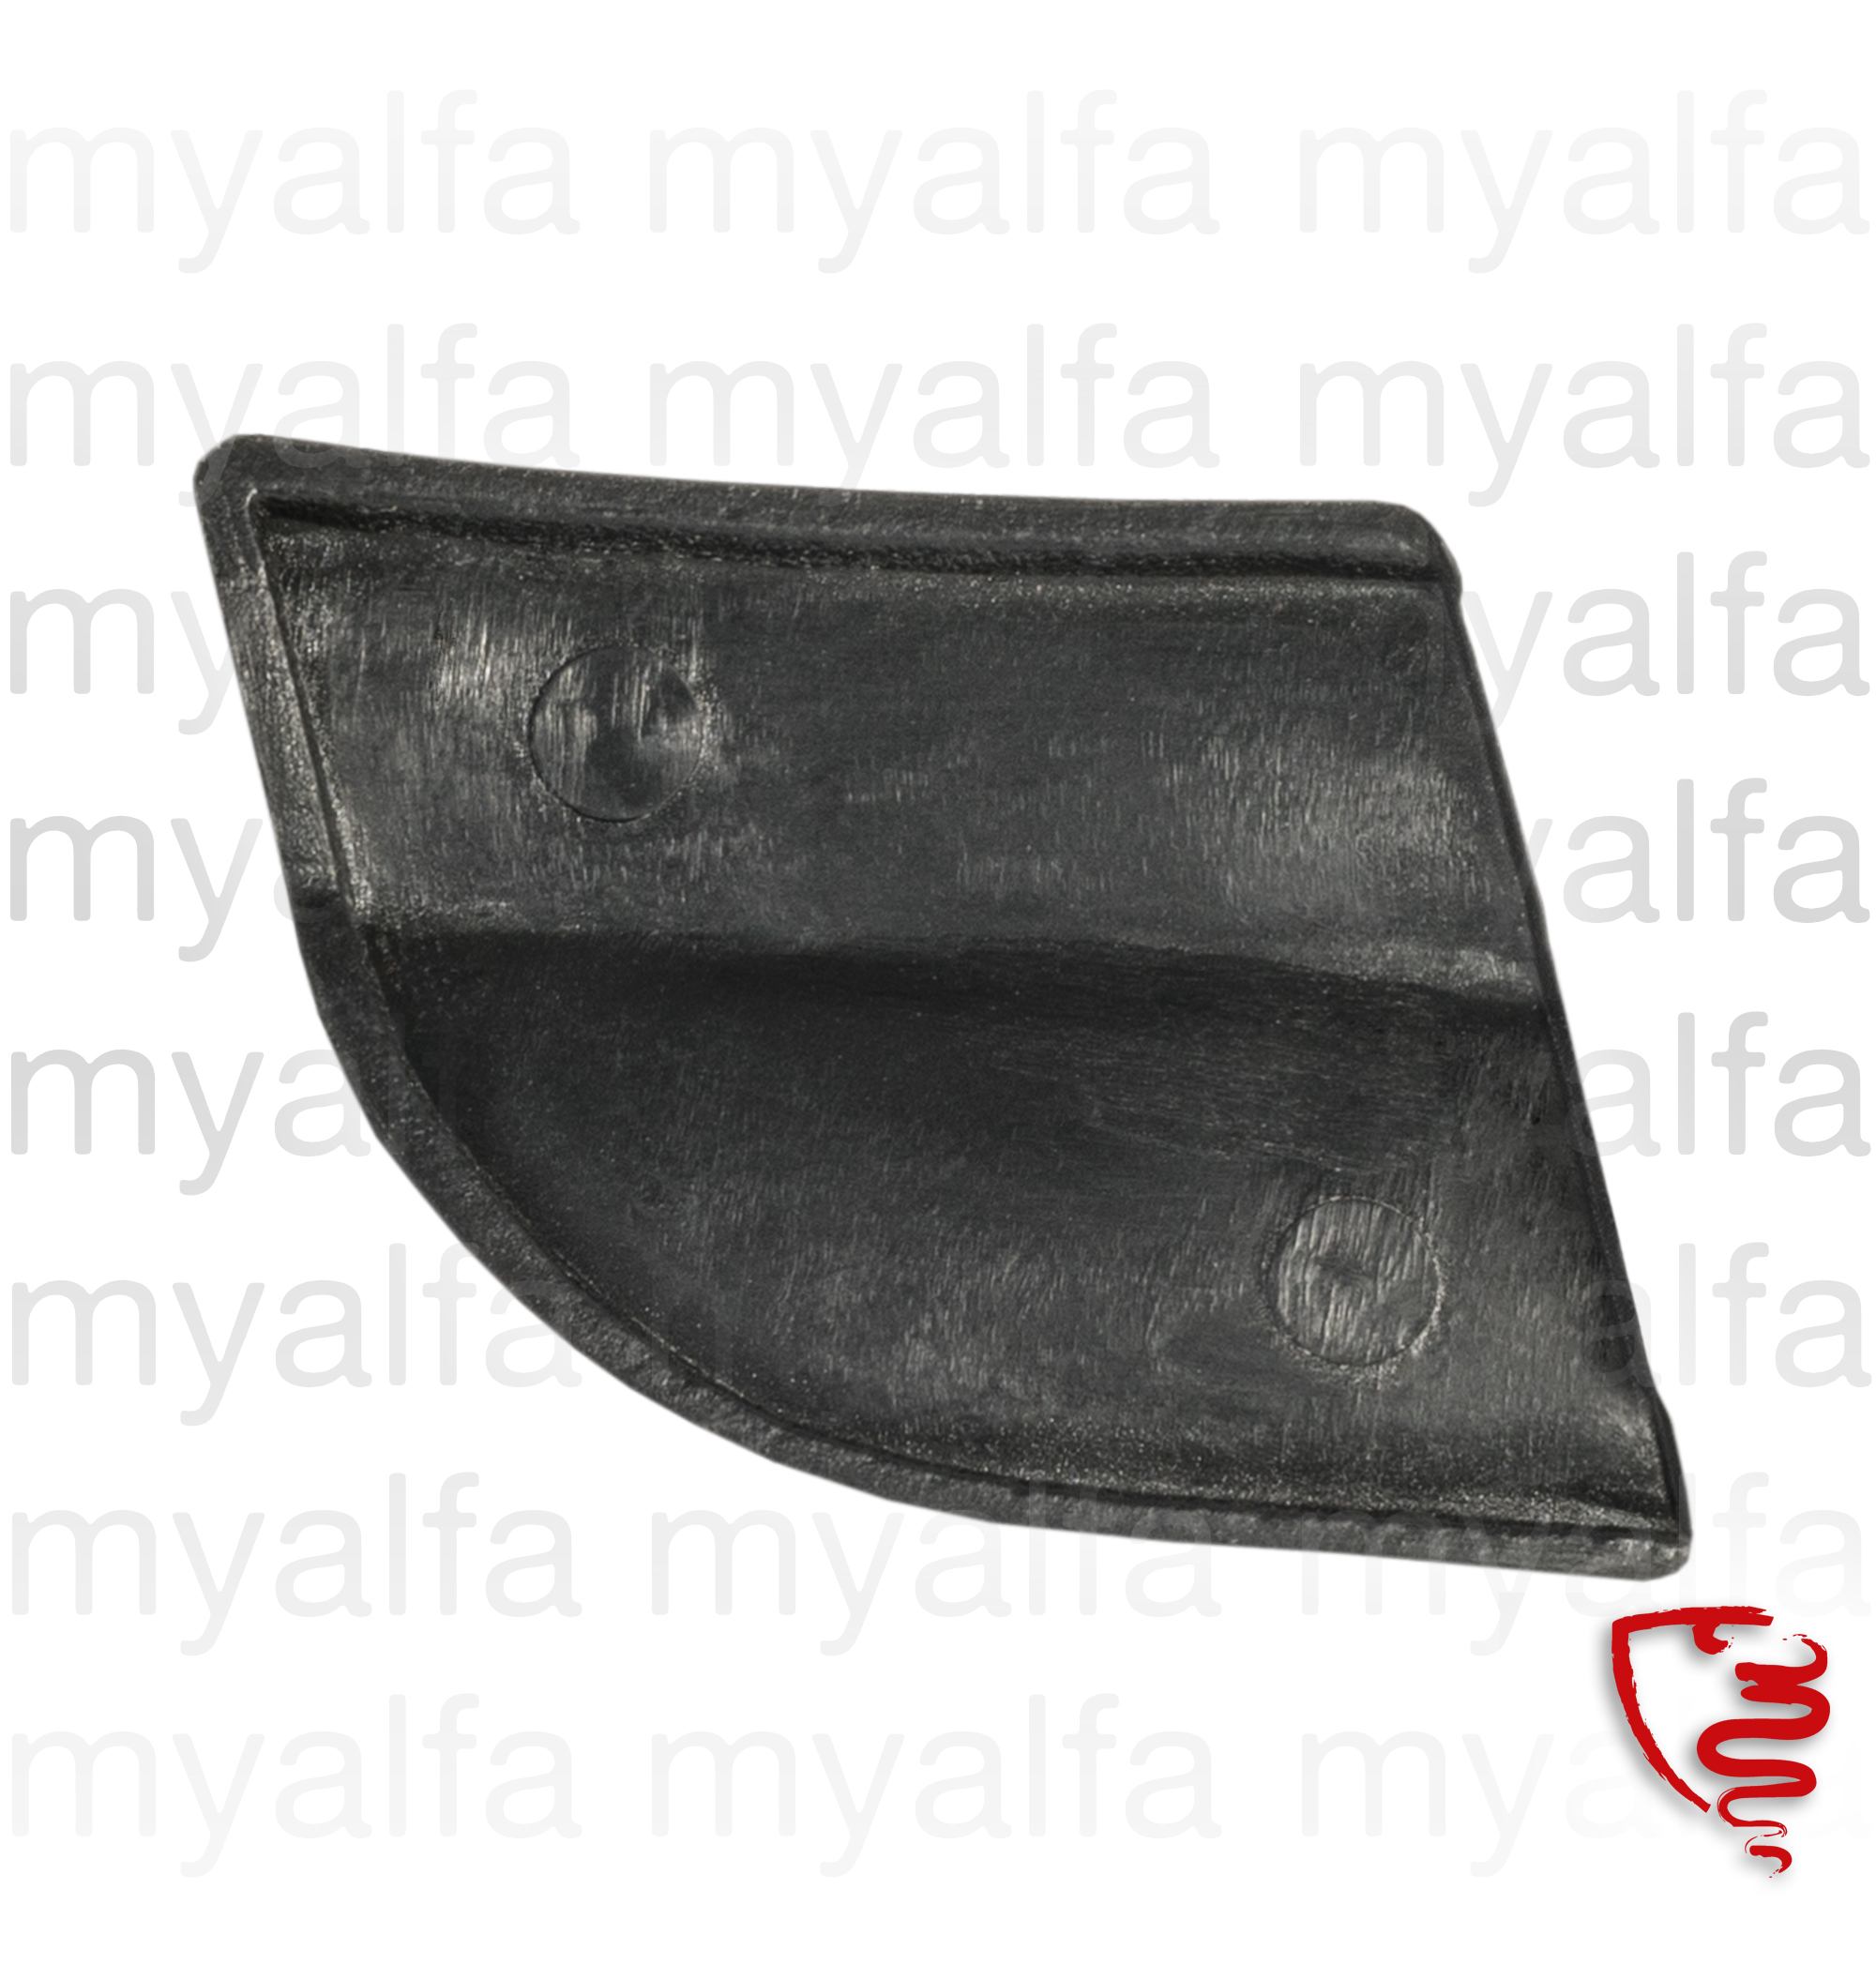 Rubber dt lower crimp. Spider for 105/115, Spider, Body parts, Rubber parts, Windscreen Front/Back